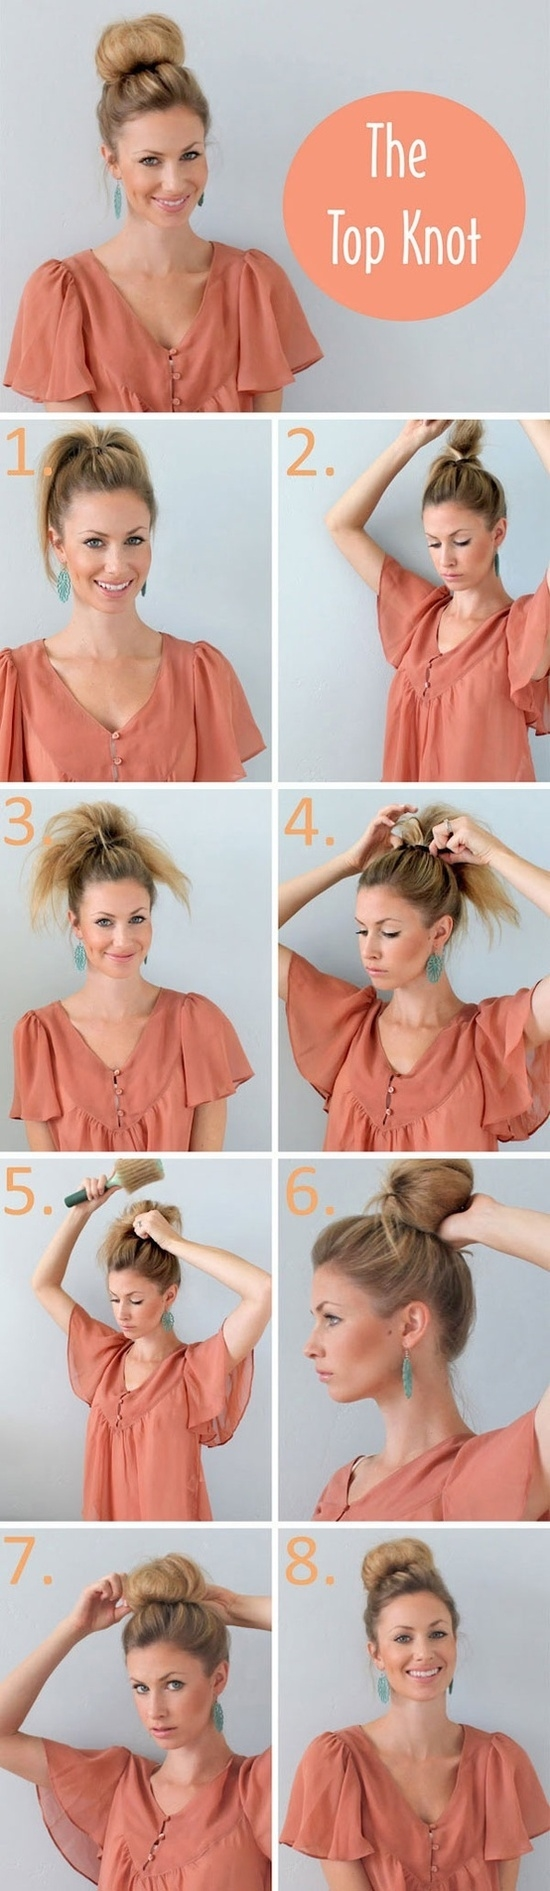 the top knot